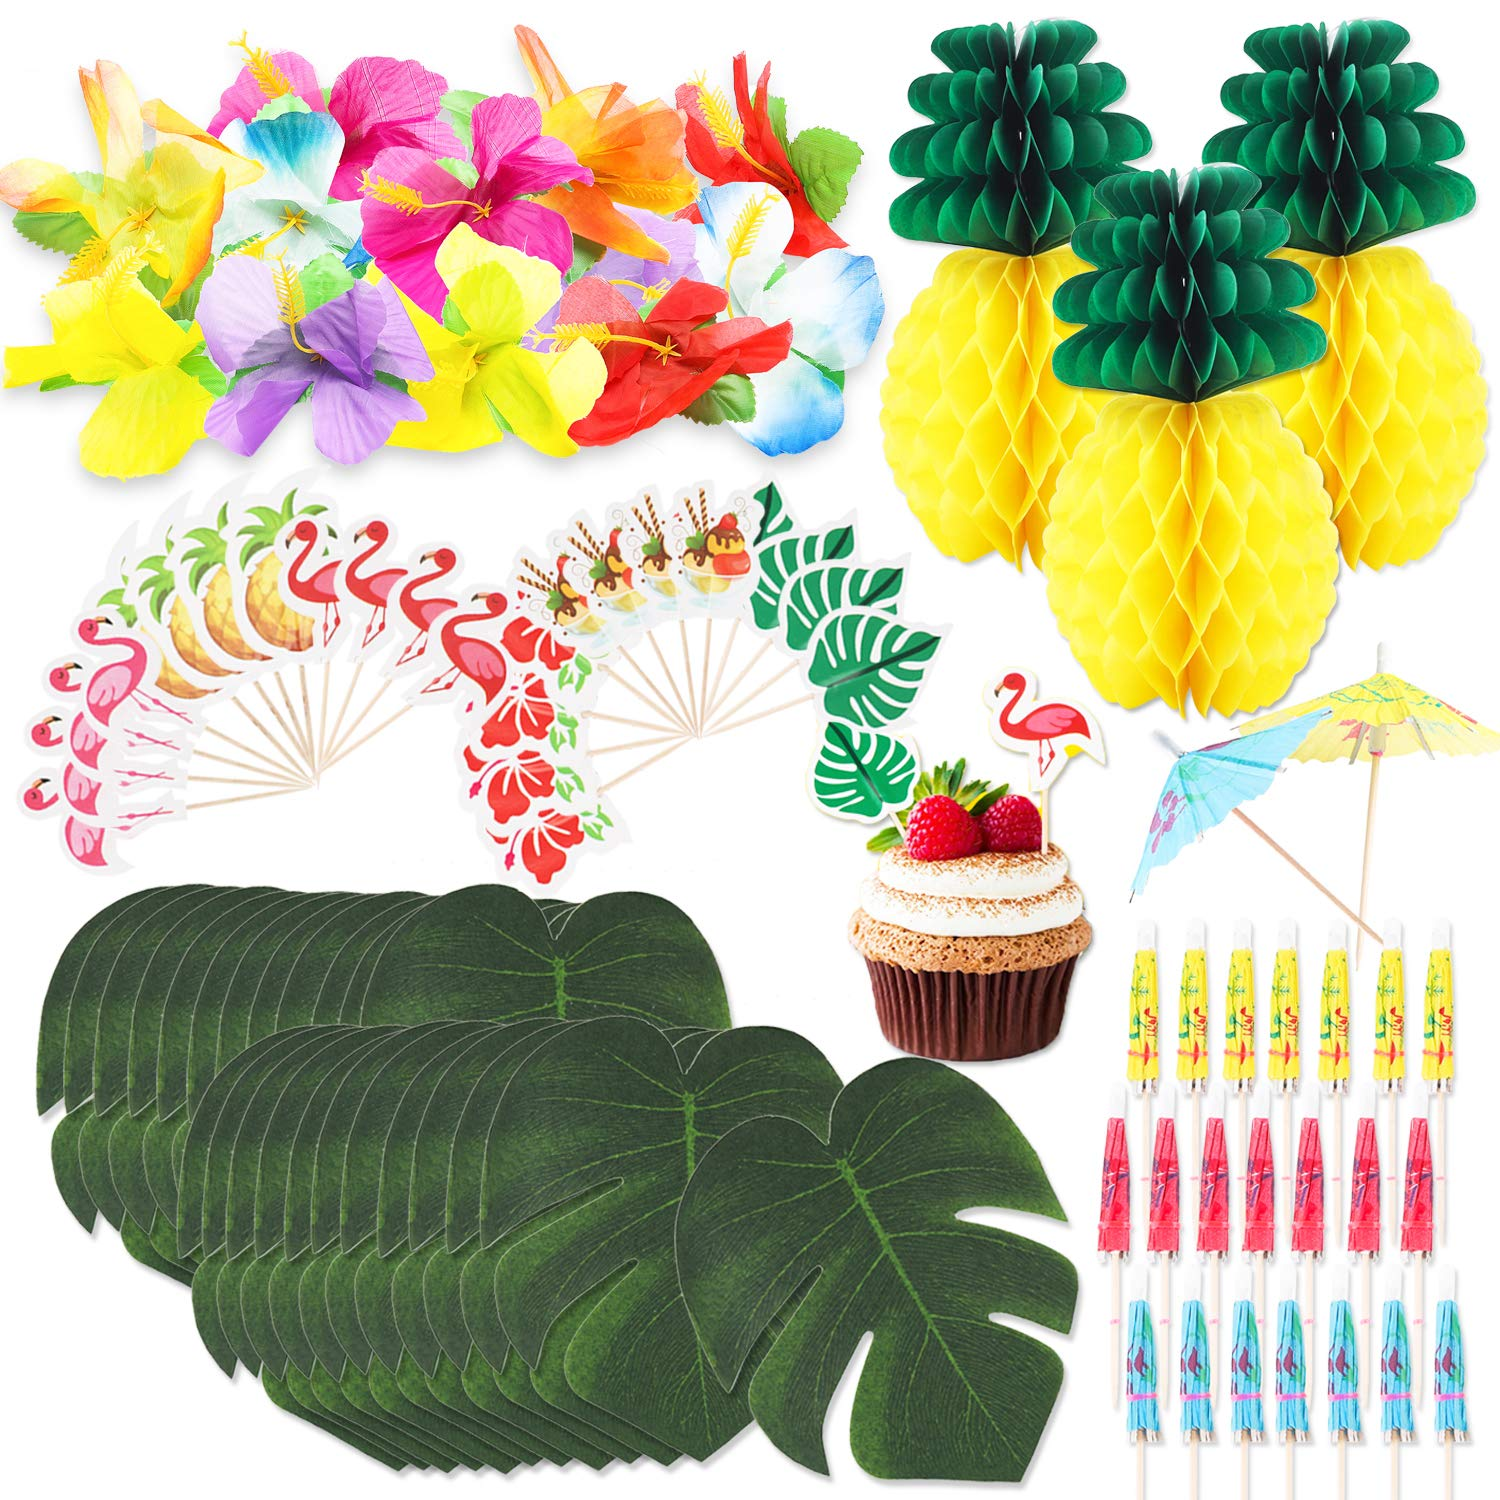 R HORSE 100 Packs Tropical Hawaiian Jungle Party Decoration Set Luau Party Supplies Decor Tropical Palm Leaves, Silk Hibiscus Flowers, Tissue Paper Pineapples, Cupcake Toppers, Paper Cocktail Umbrella